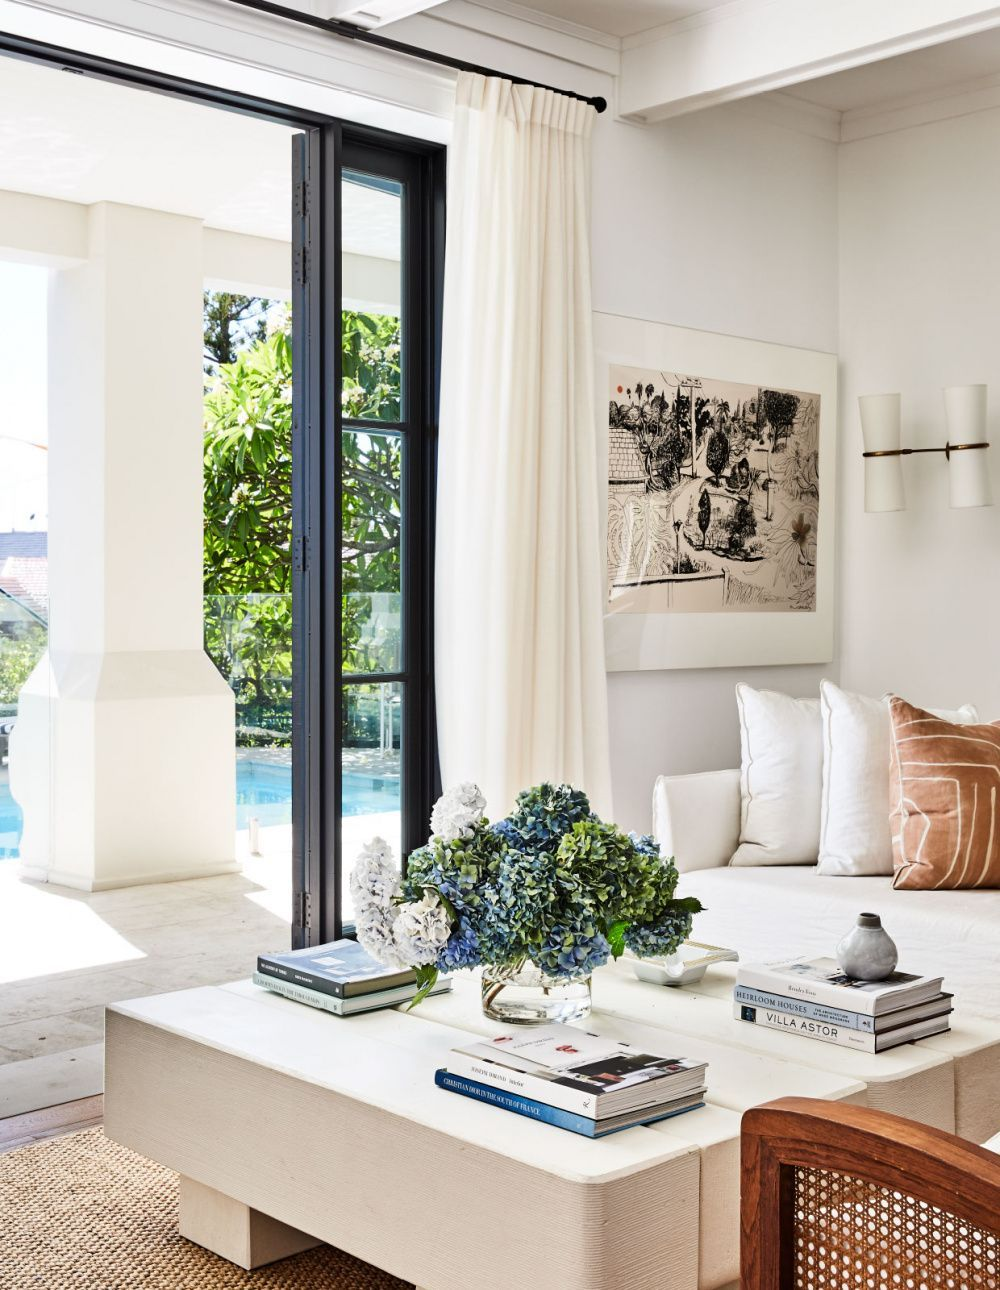 House Tour This Sydney Home Strikes The Perfect Balance Of Elevated Approachable Design Coco Kelley House Interior Family Room Design Interior Design